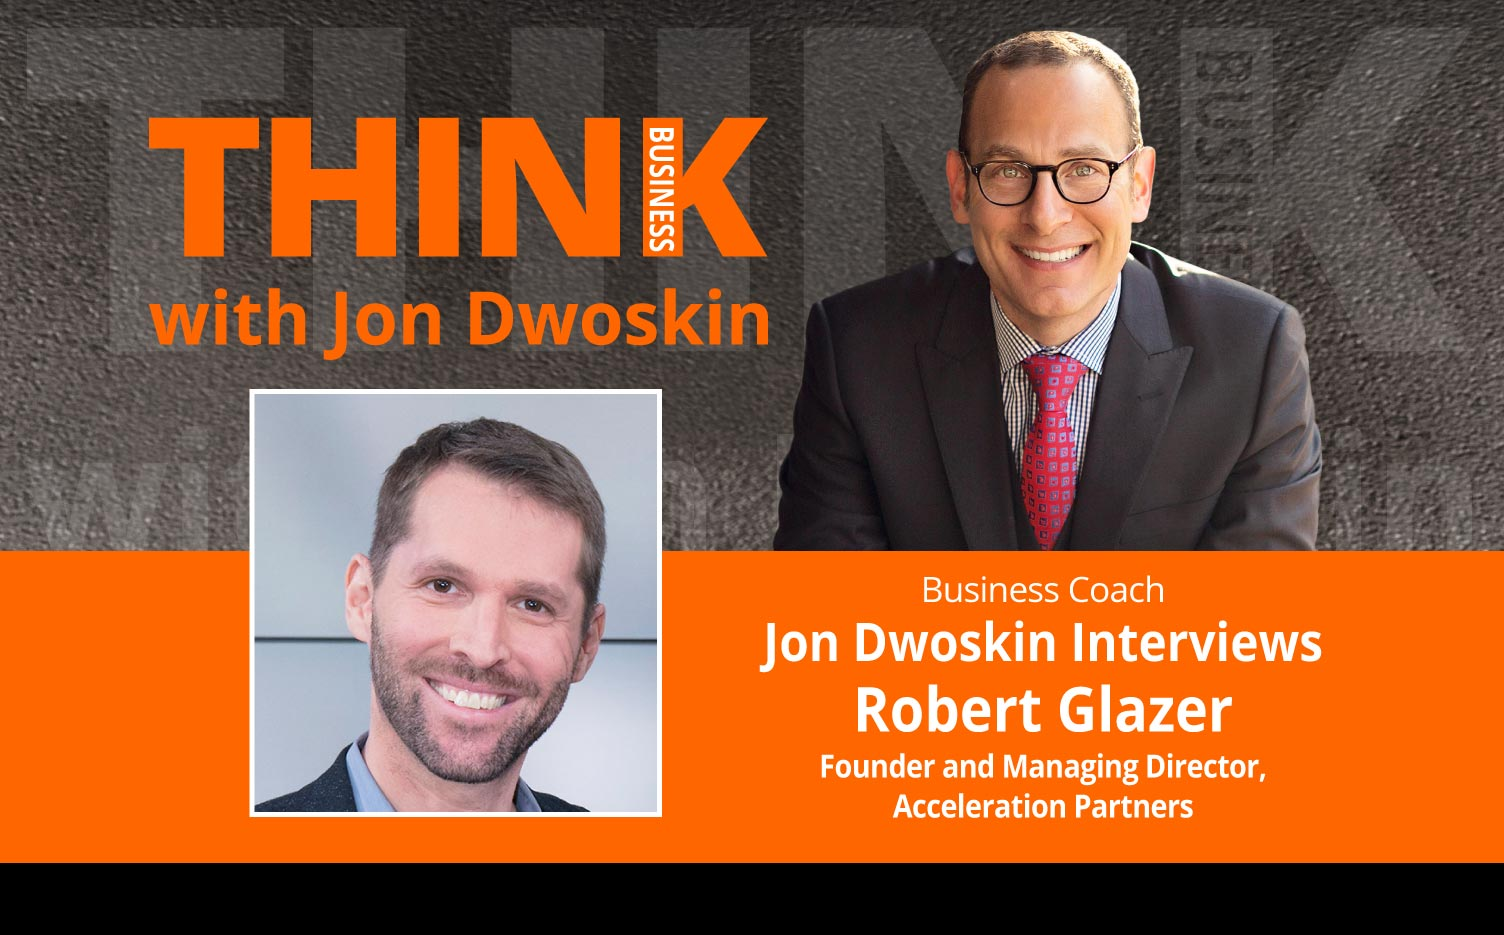 THINK Business Podcast: Jon Dwoskin Interviews Robert Glazer, Founder and Managing Director, Acceleration Partners